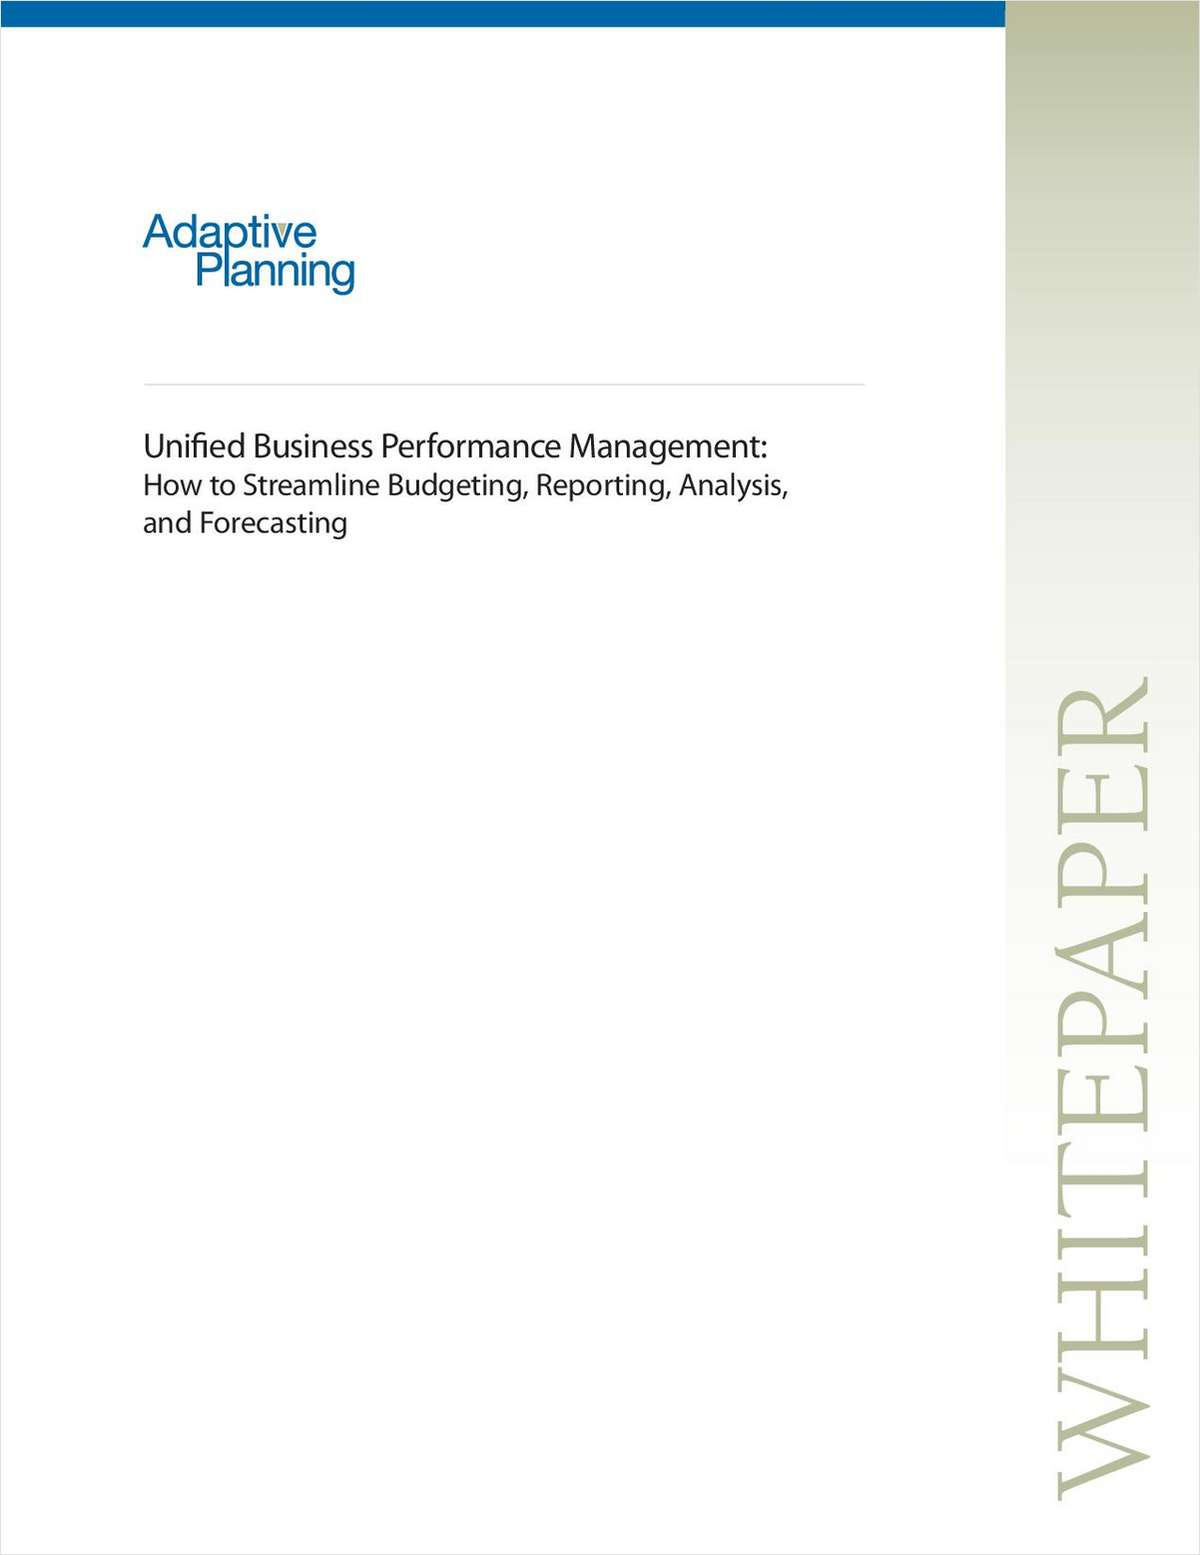 Unified Business Performance Management